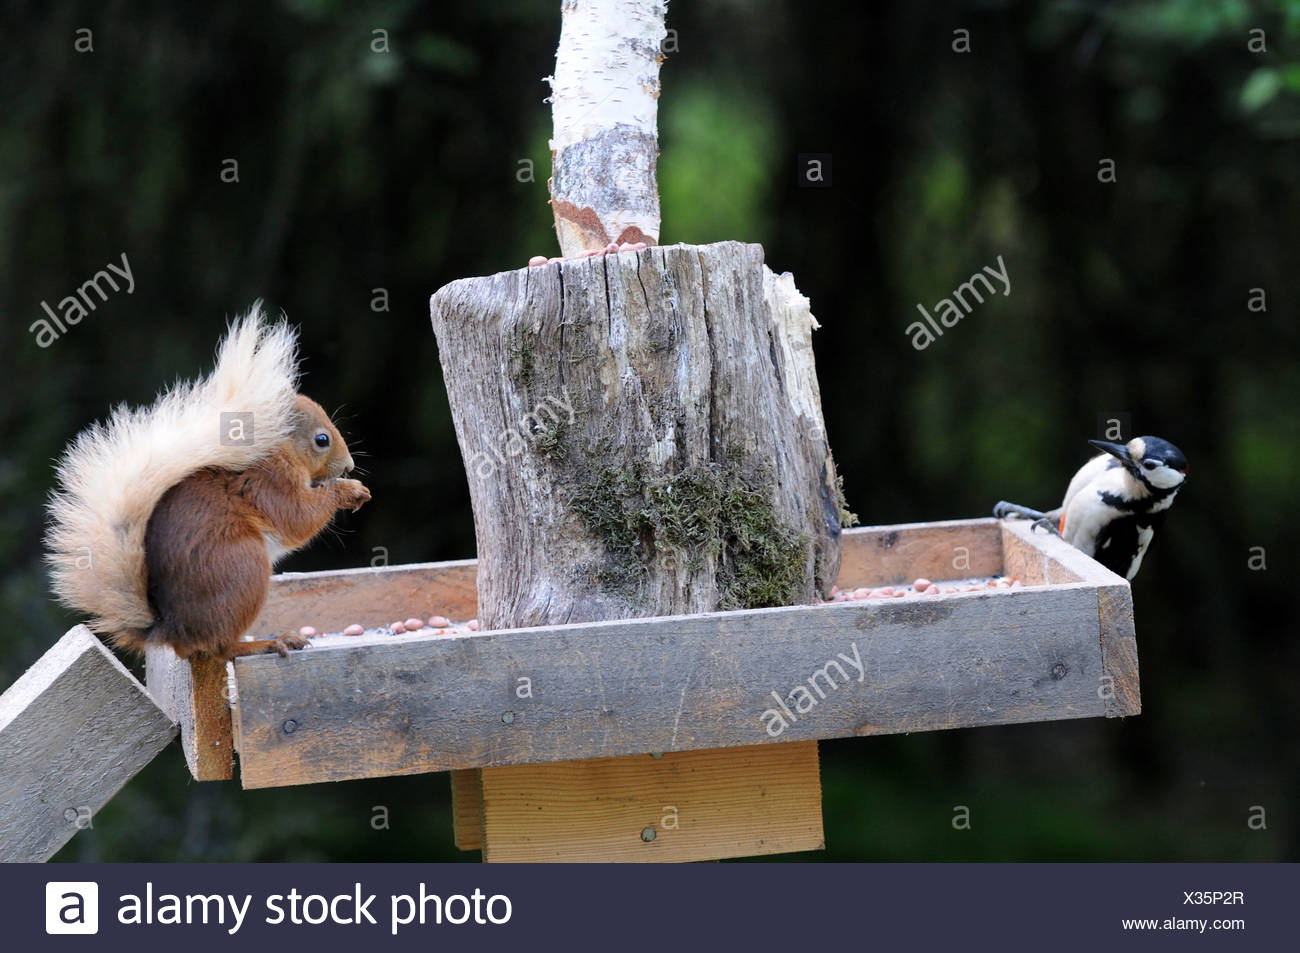 Great-spotted woodpecker (Dendrocopus major) and red squirrel (Sciurus vulgaris) feeding from bird table. - Stock Image